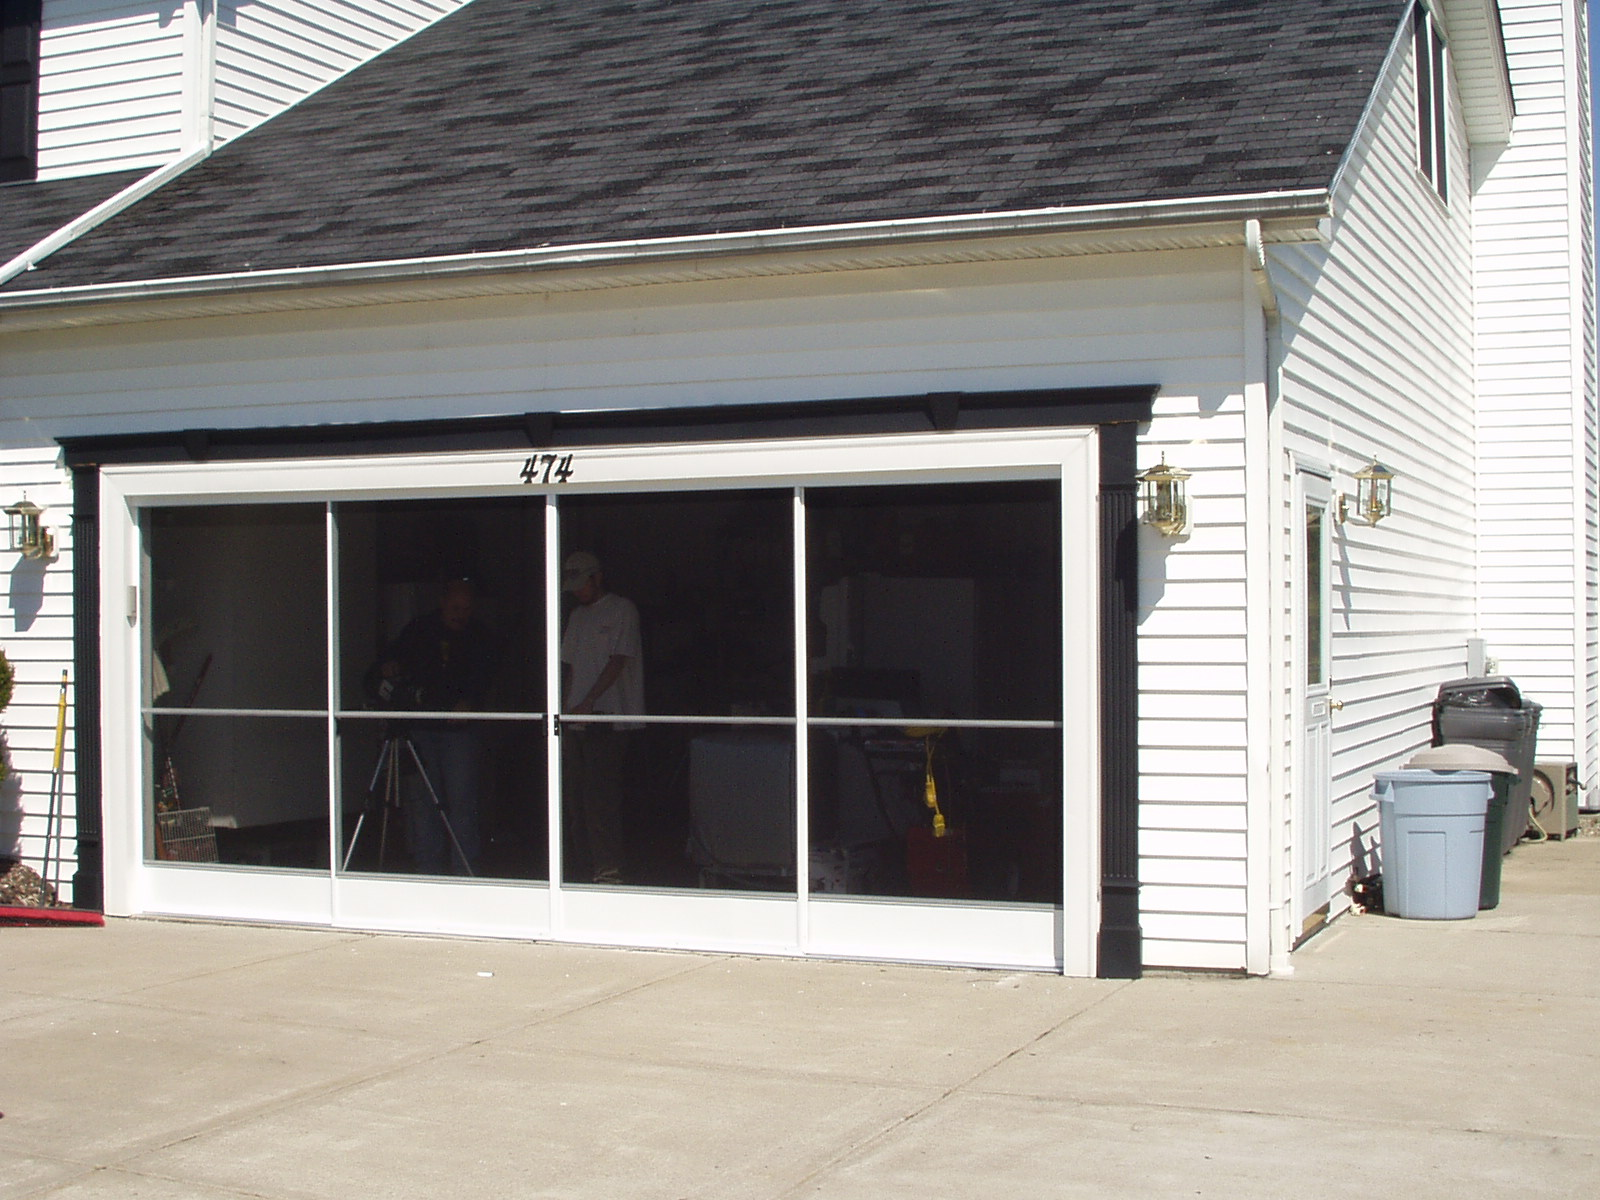 Garage Door Screens : Garage screen door patio enclosure installation gallery